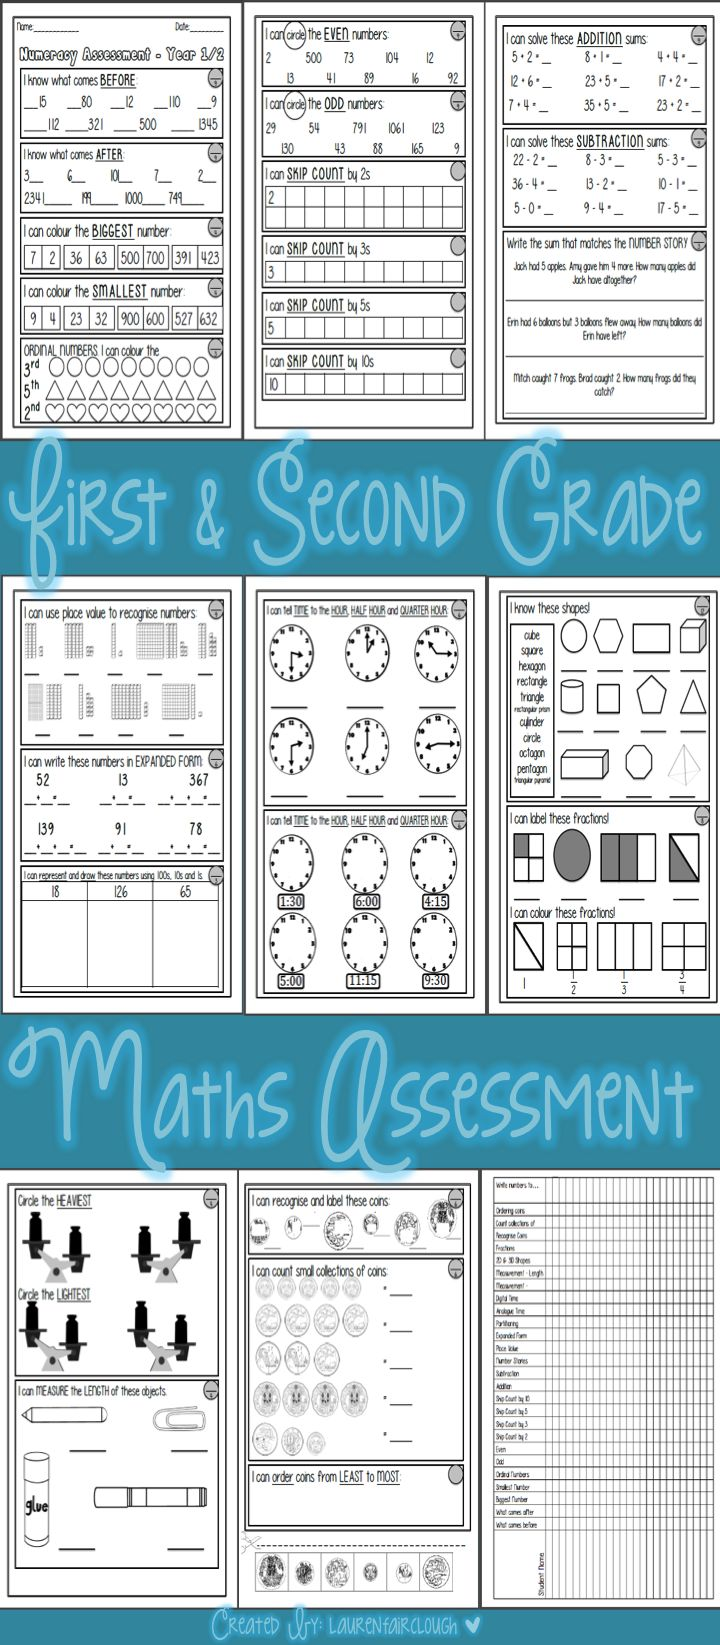 FIRST AND SECOND GRADE MATHS ASSESSMENT!  This test provides students the opportunity to demonstrate their understanding of the following concepts..  * Number - bigger, smaller, before, after, odd, even and skip counting.  * Addition * Subtraction  * Telling time the the hour, half hour and quarter hour * Partitioning and Place Value * Fractions * Recognising, counting and ordering Australian Coins. * Measurement - weight and length